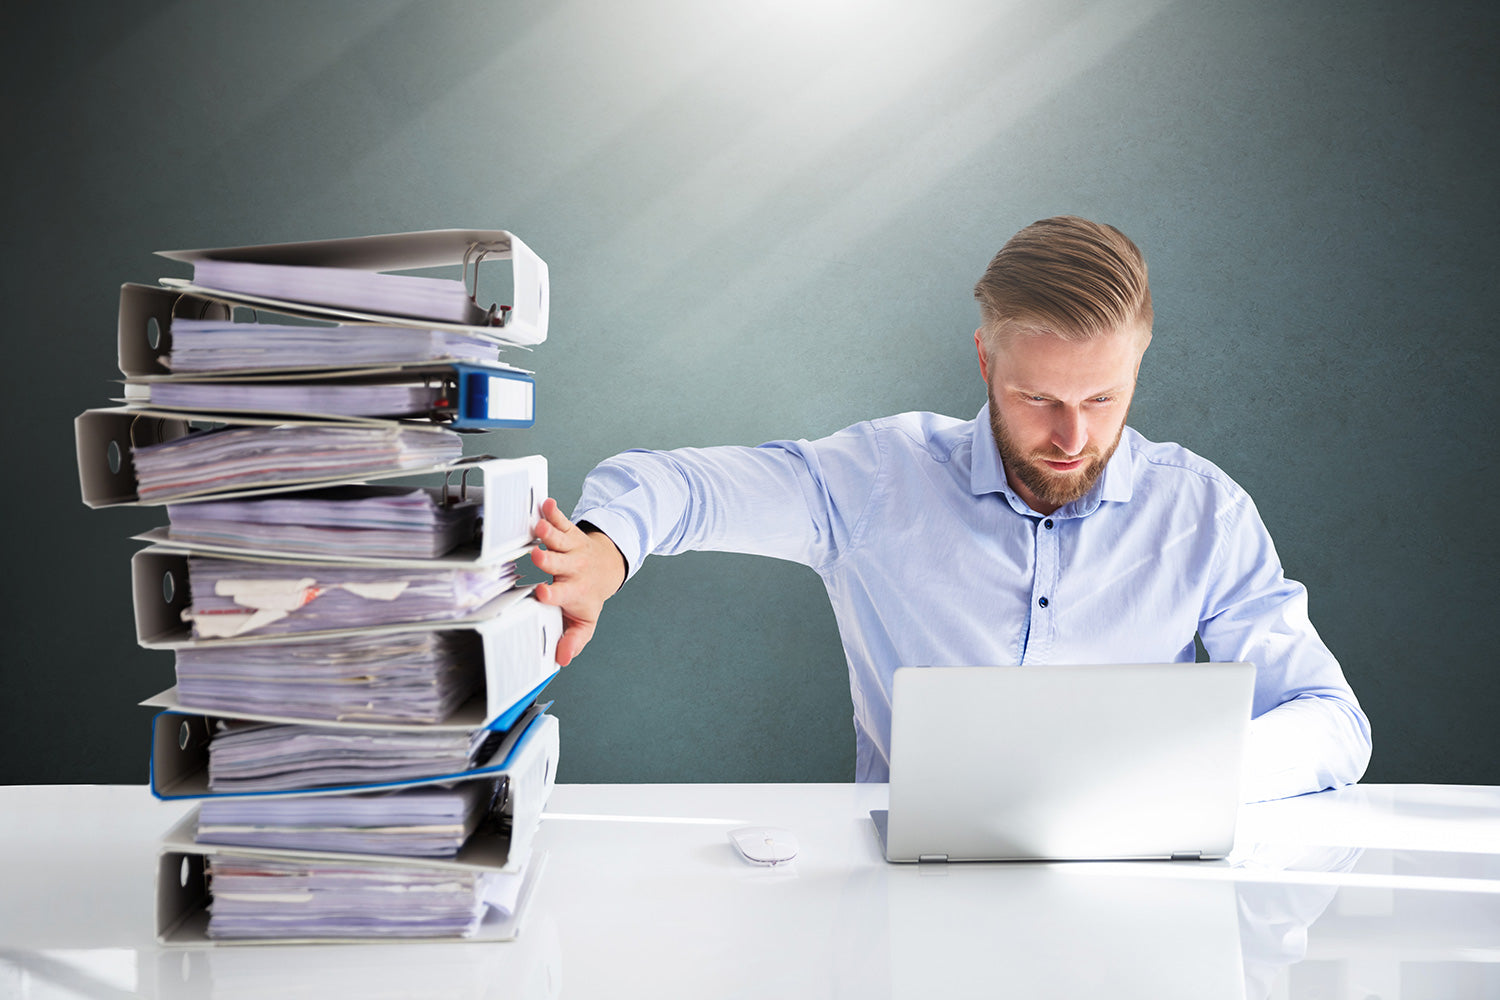 Archive scanning and digitization of paper and files for businesses and organizations